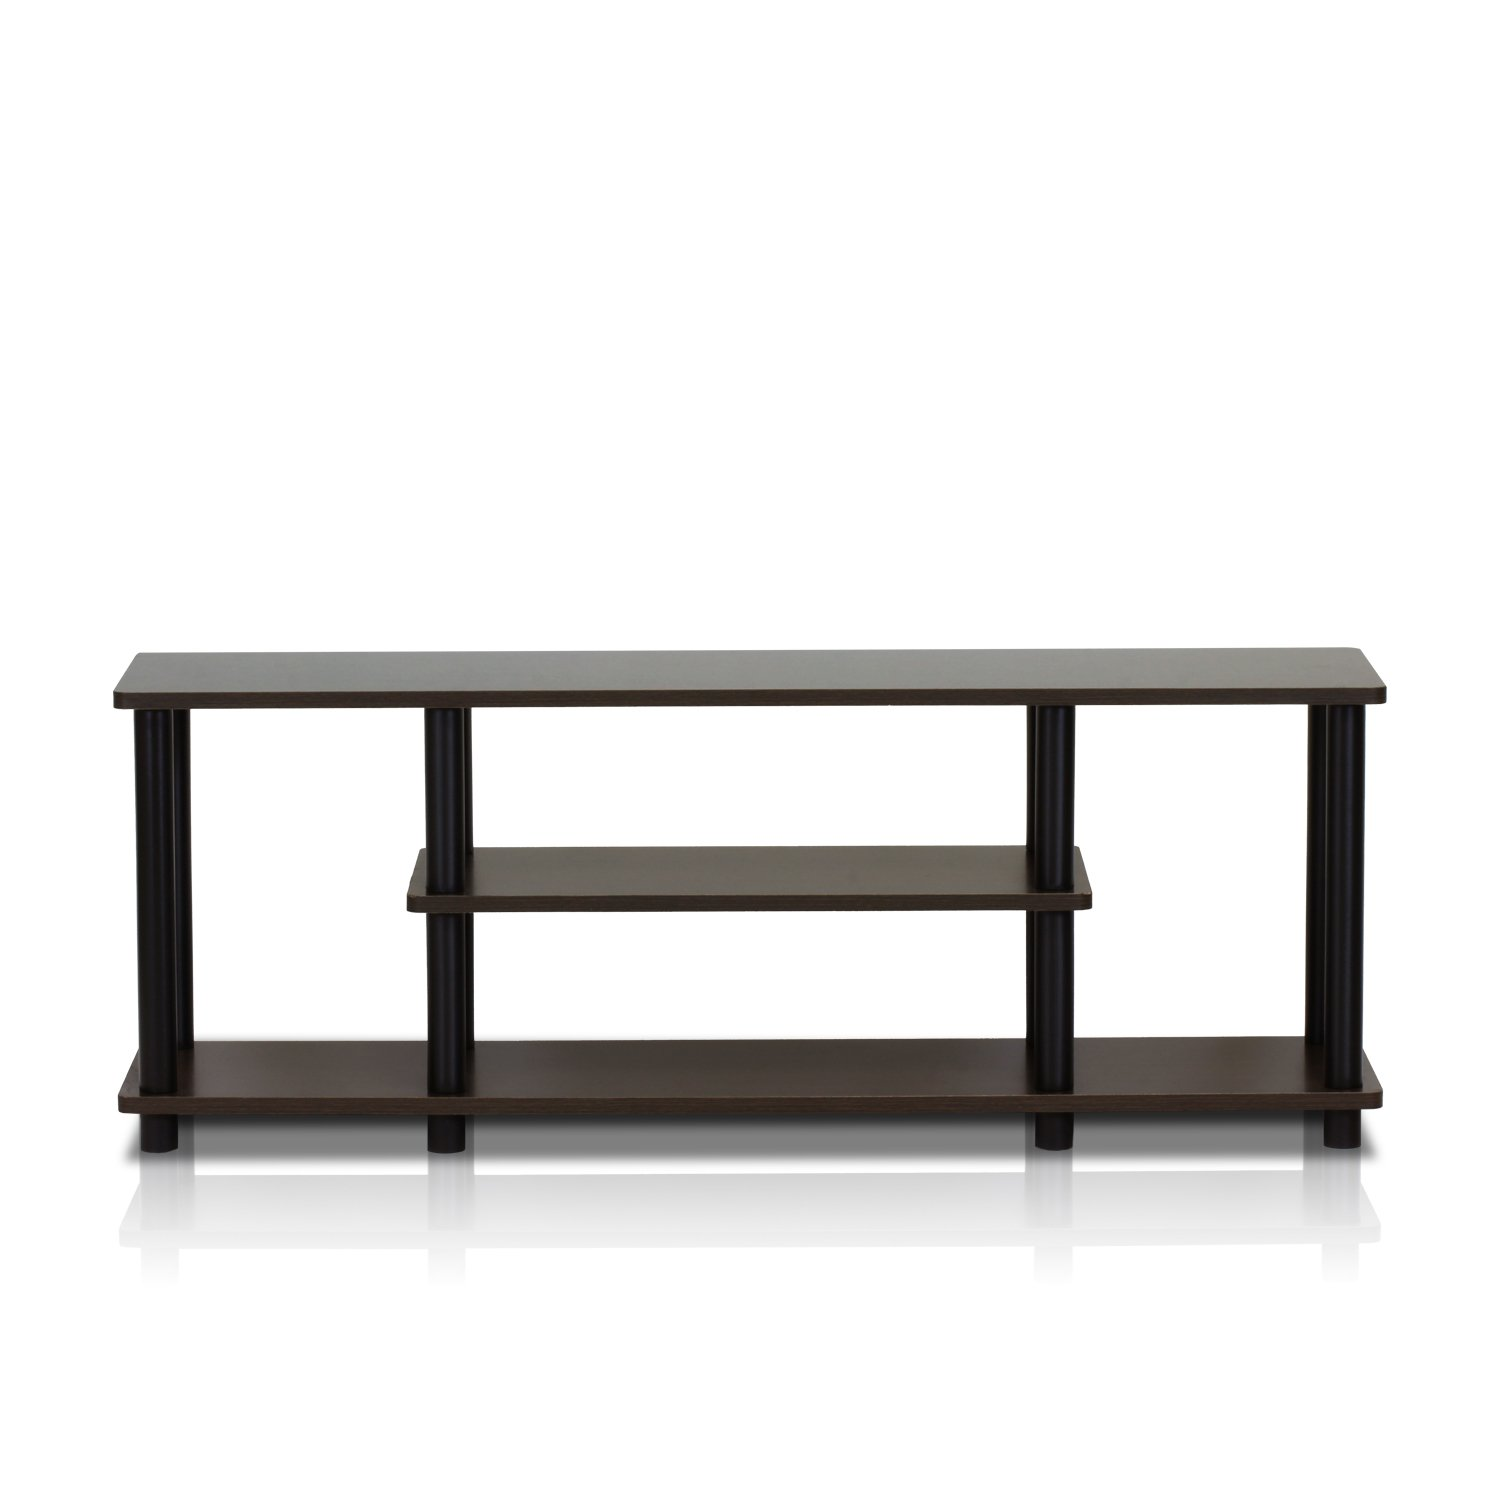 Tv Stand Low Profile Small Entertainment Center Turn N Tube 3 Tier